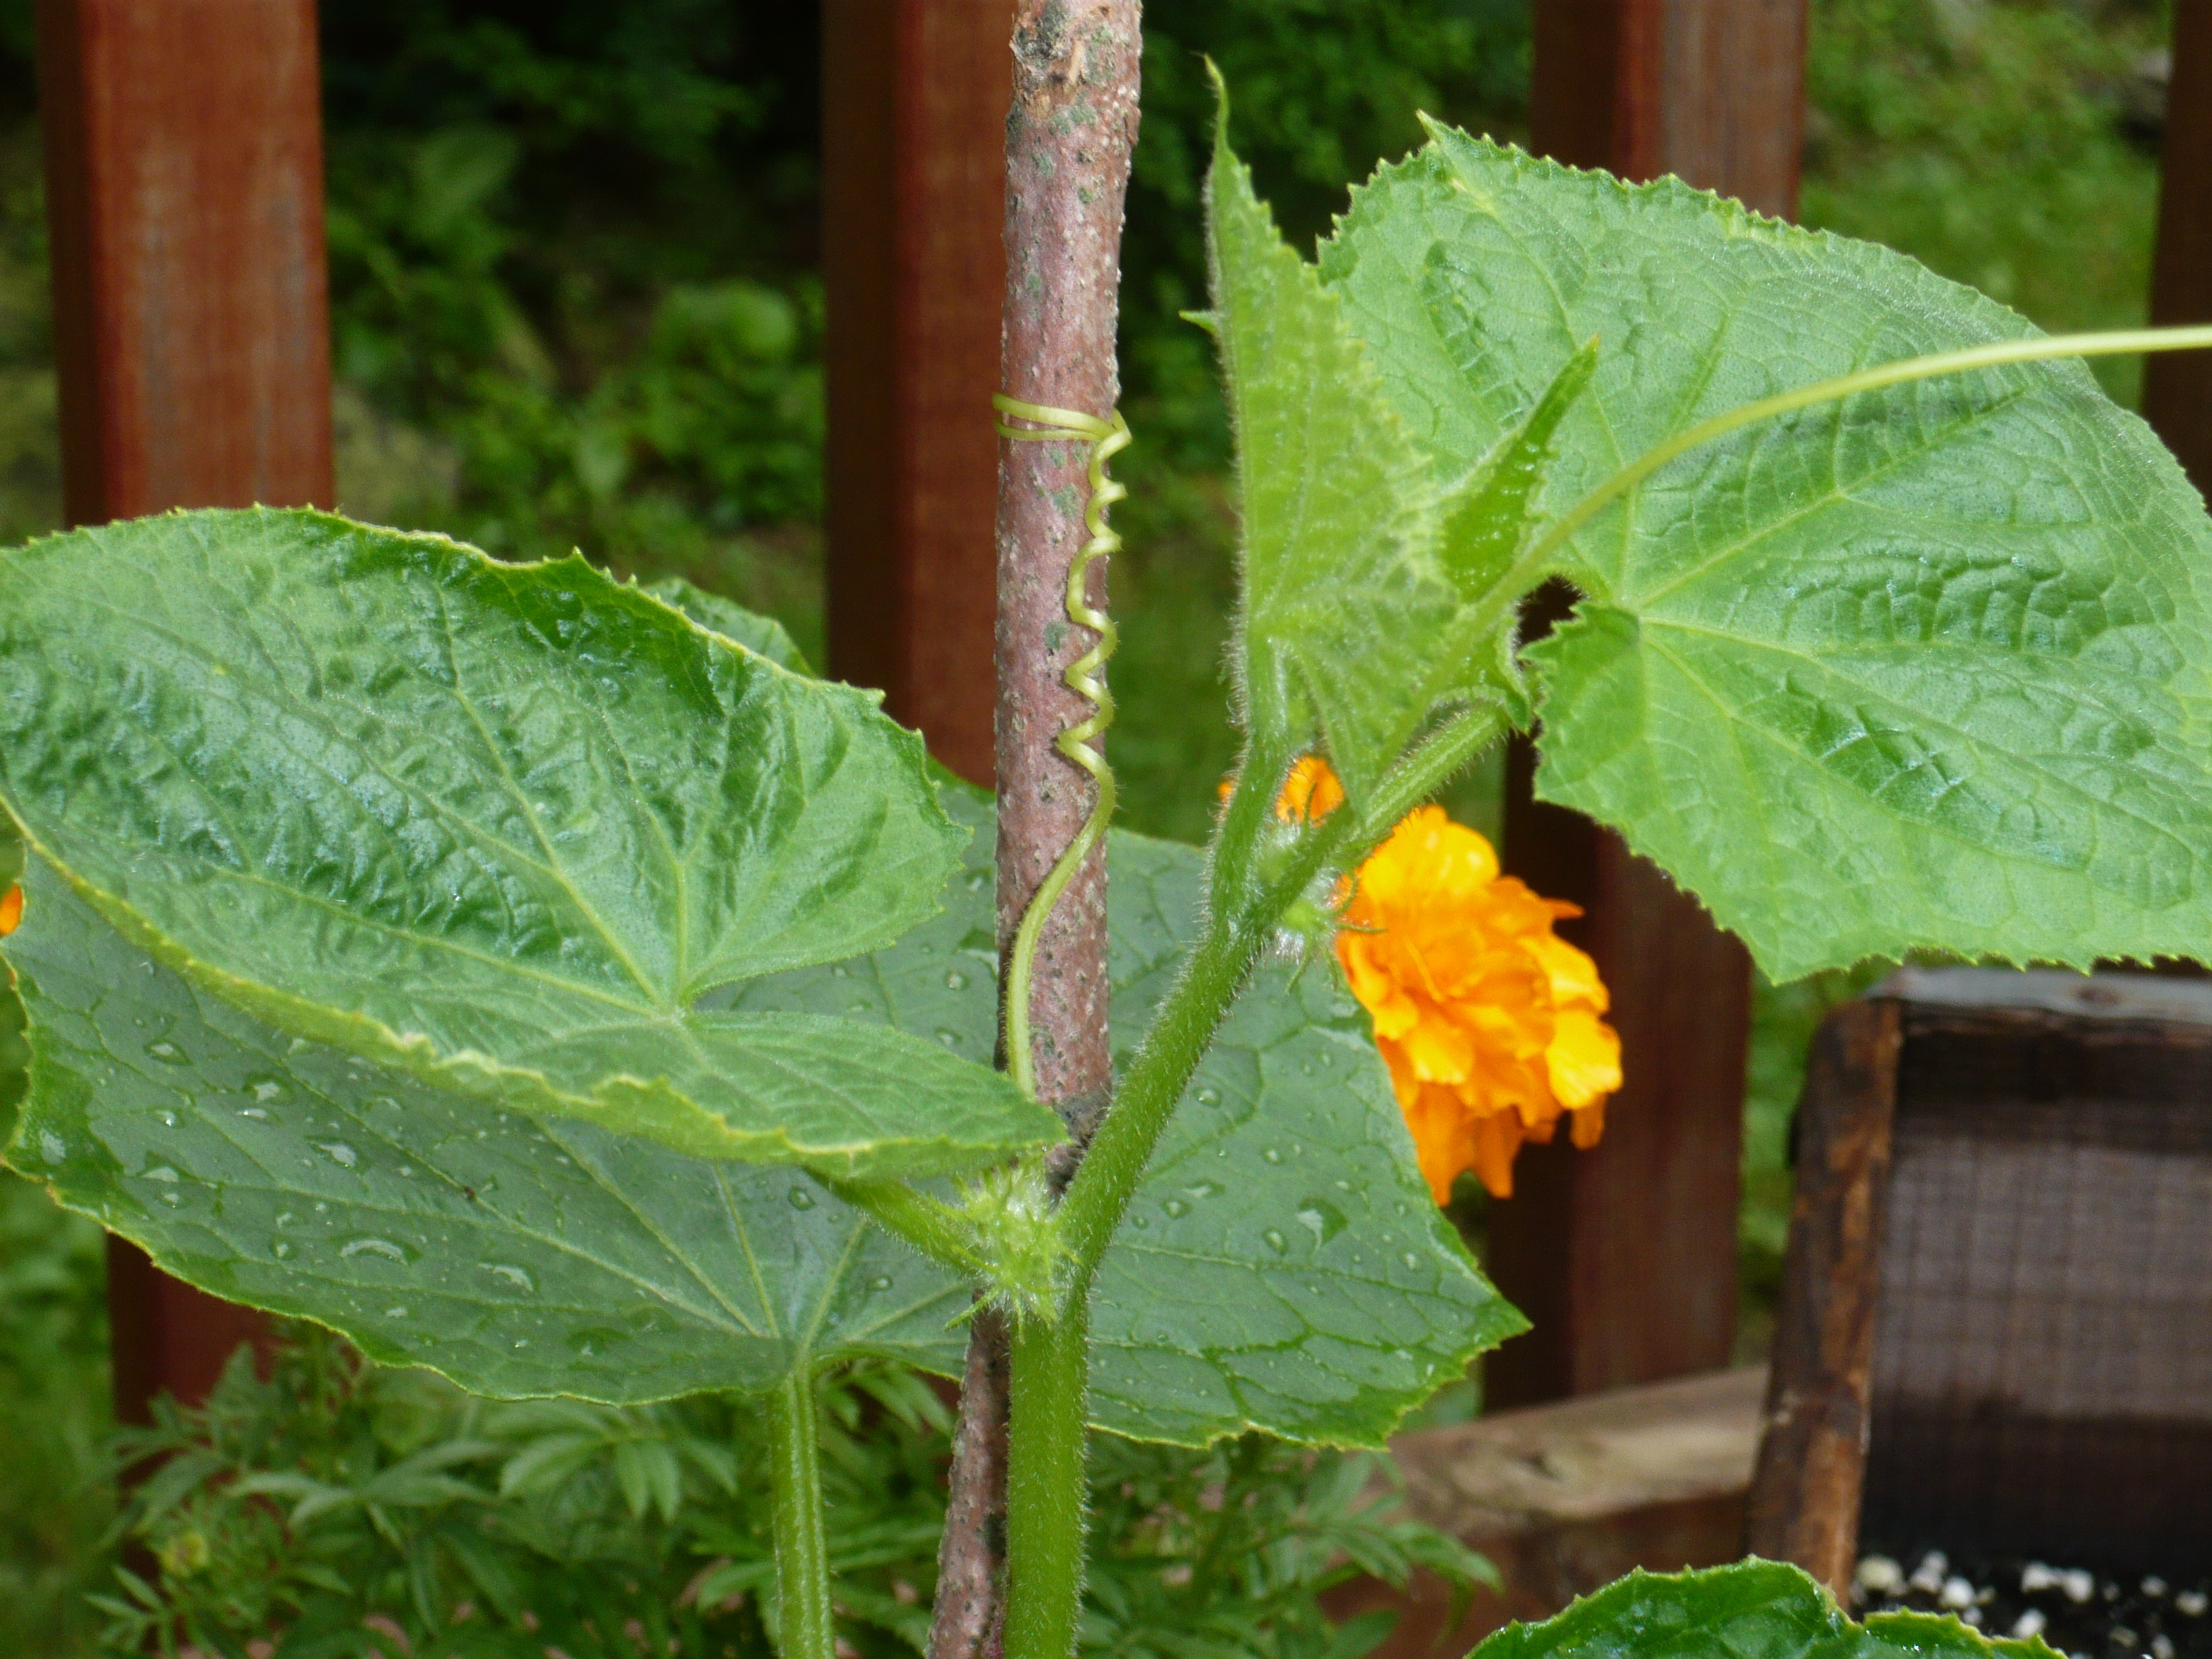 Who knew cucumber plants were so beautiful?